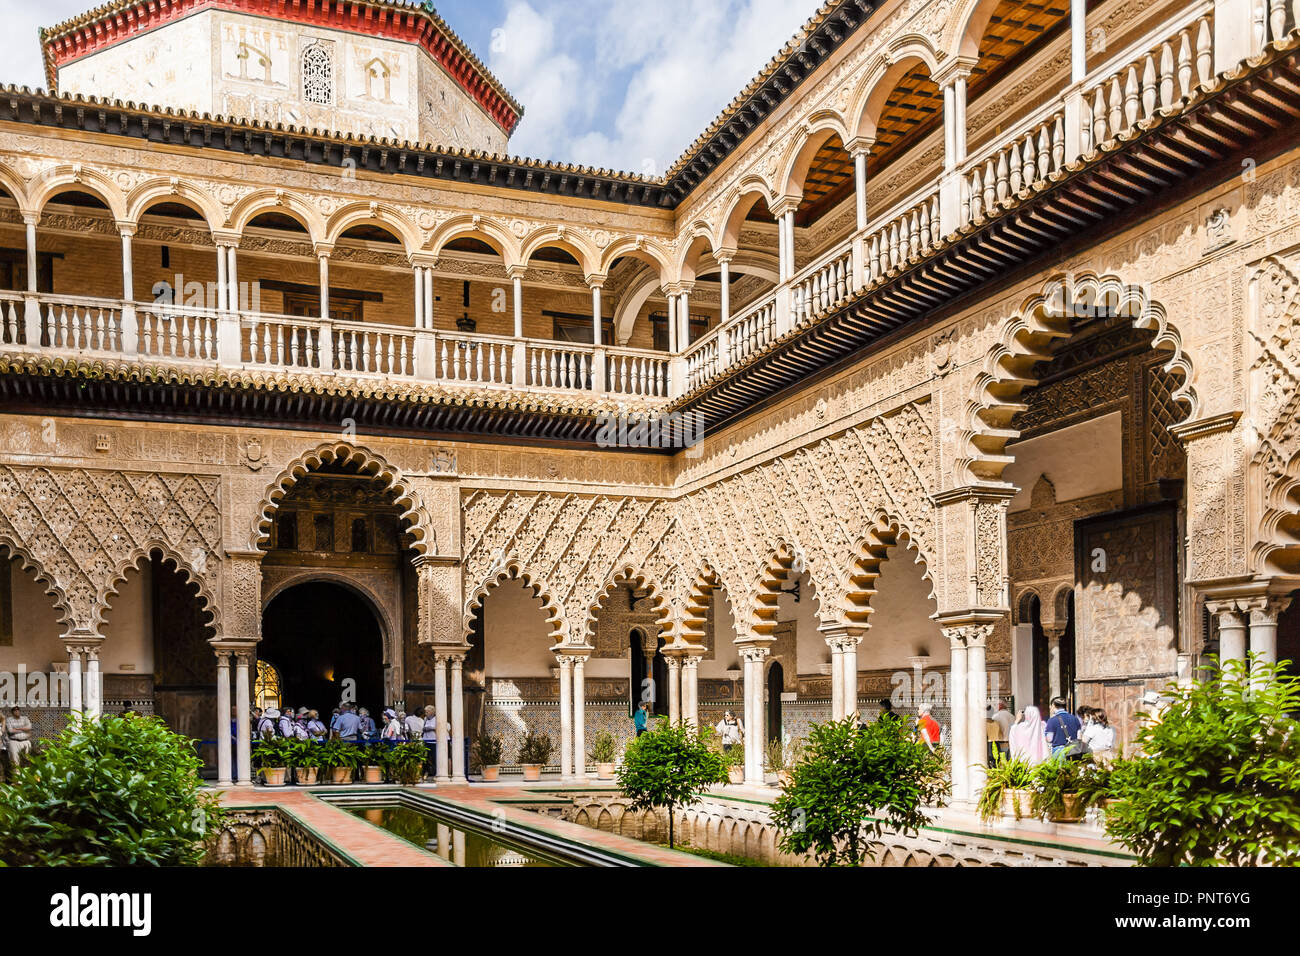 View of the ornate decoration in the inner courtyard of the Reales Alcazares, Seville, Spain. Stock Photo